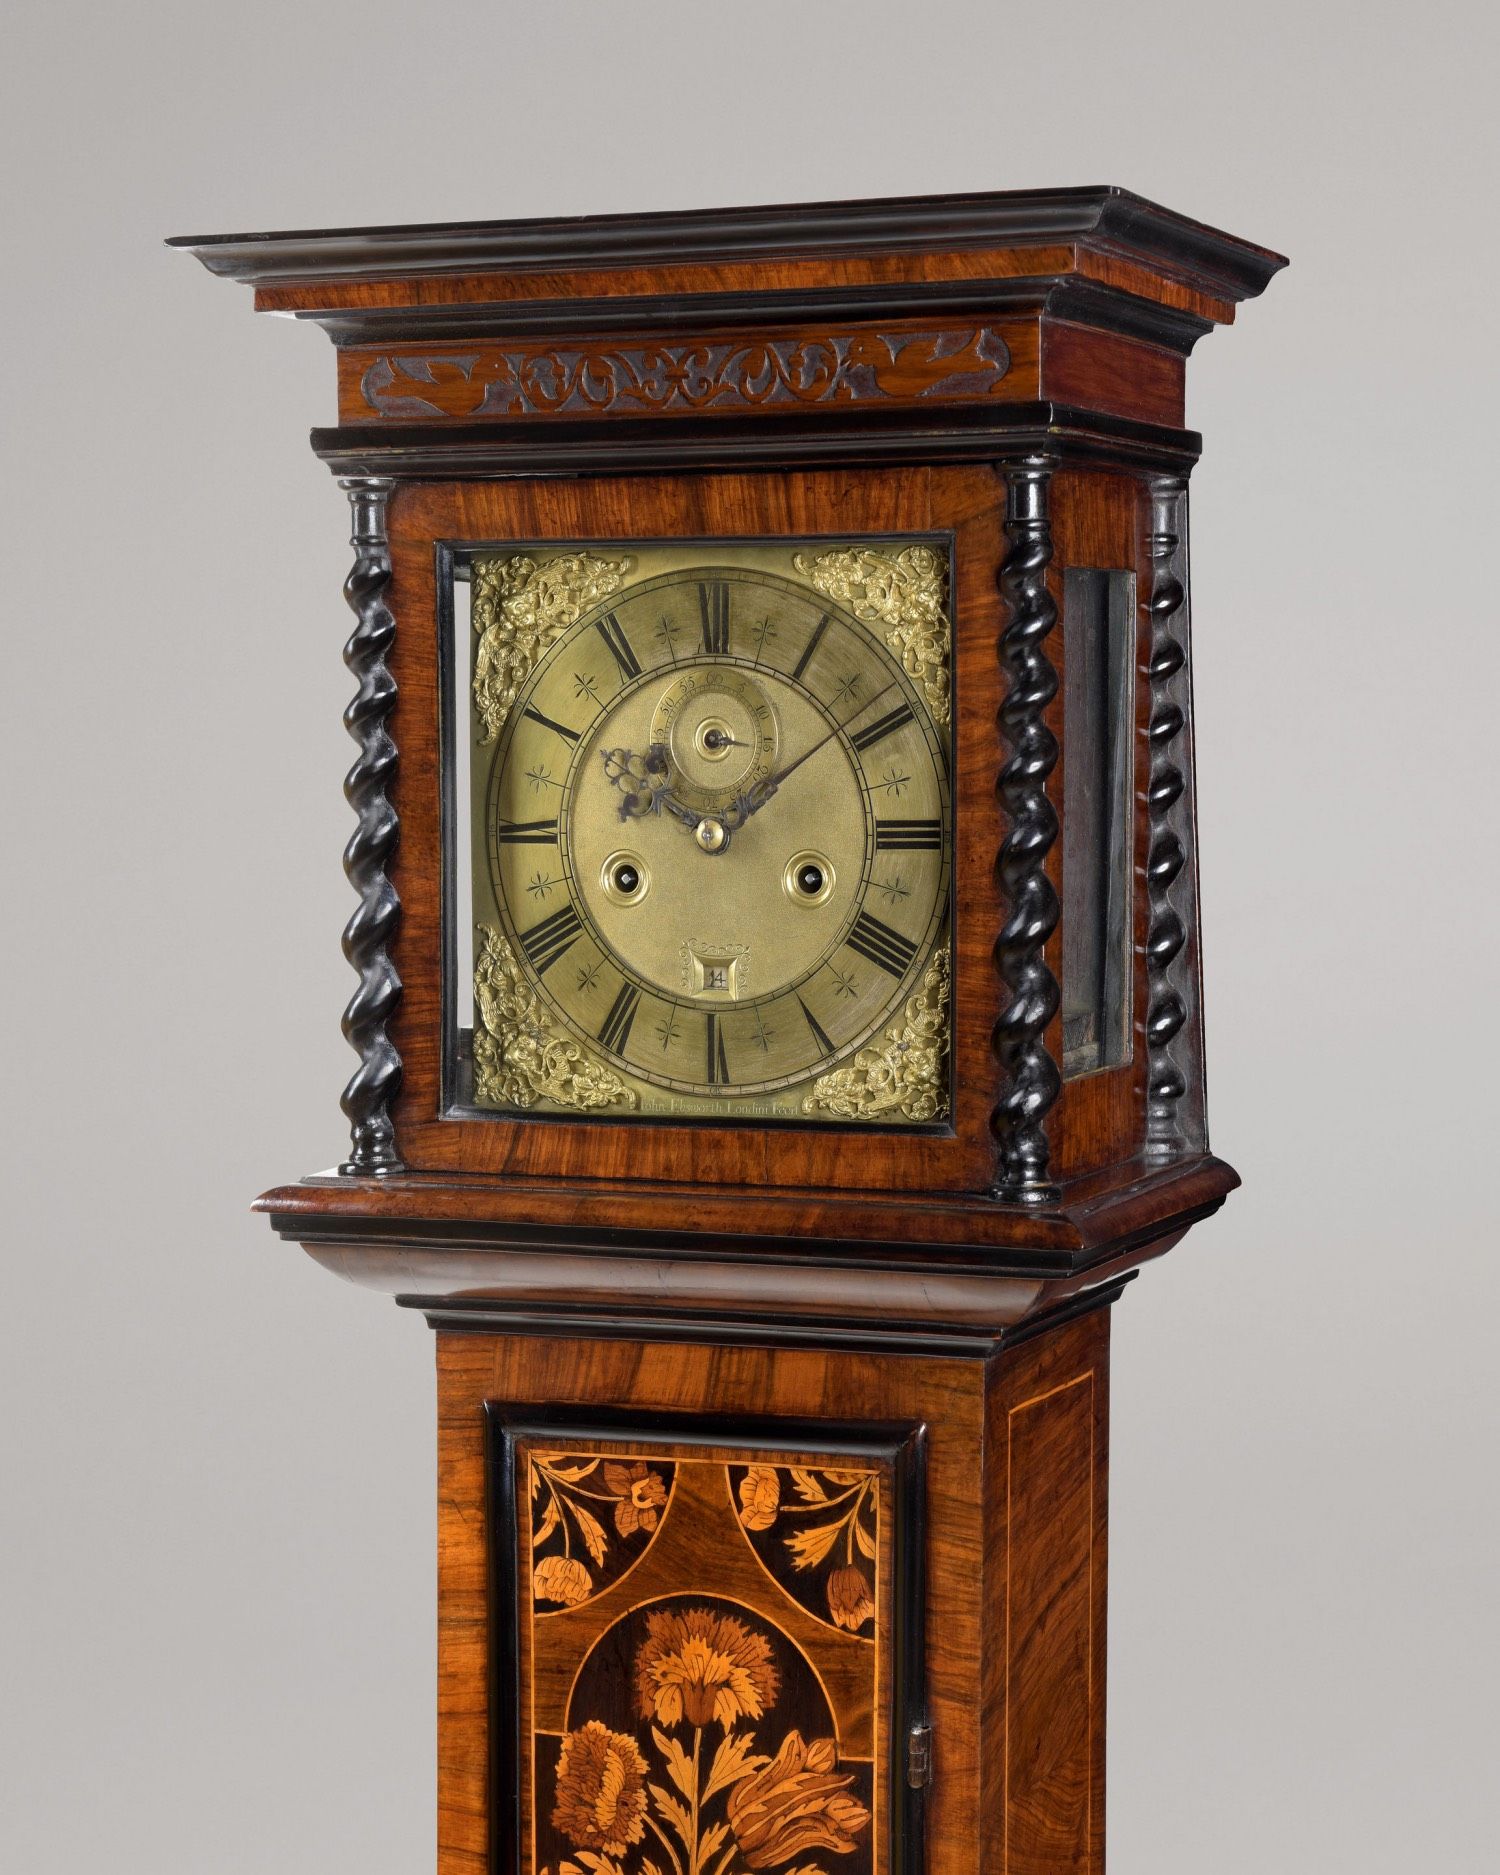 JOHN EBSWORTH LONDINI FECIT. A FINE WILLIAM III PERIOD FLORAL MARQUETRY AND WALNUT 8-DAY LONGCASE CLOCK OF RARE SMALL SIZE.